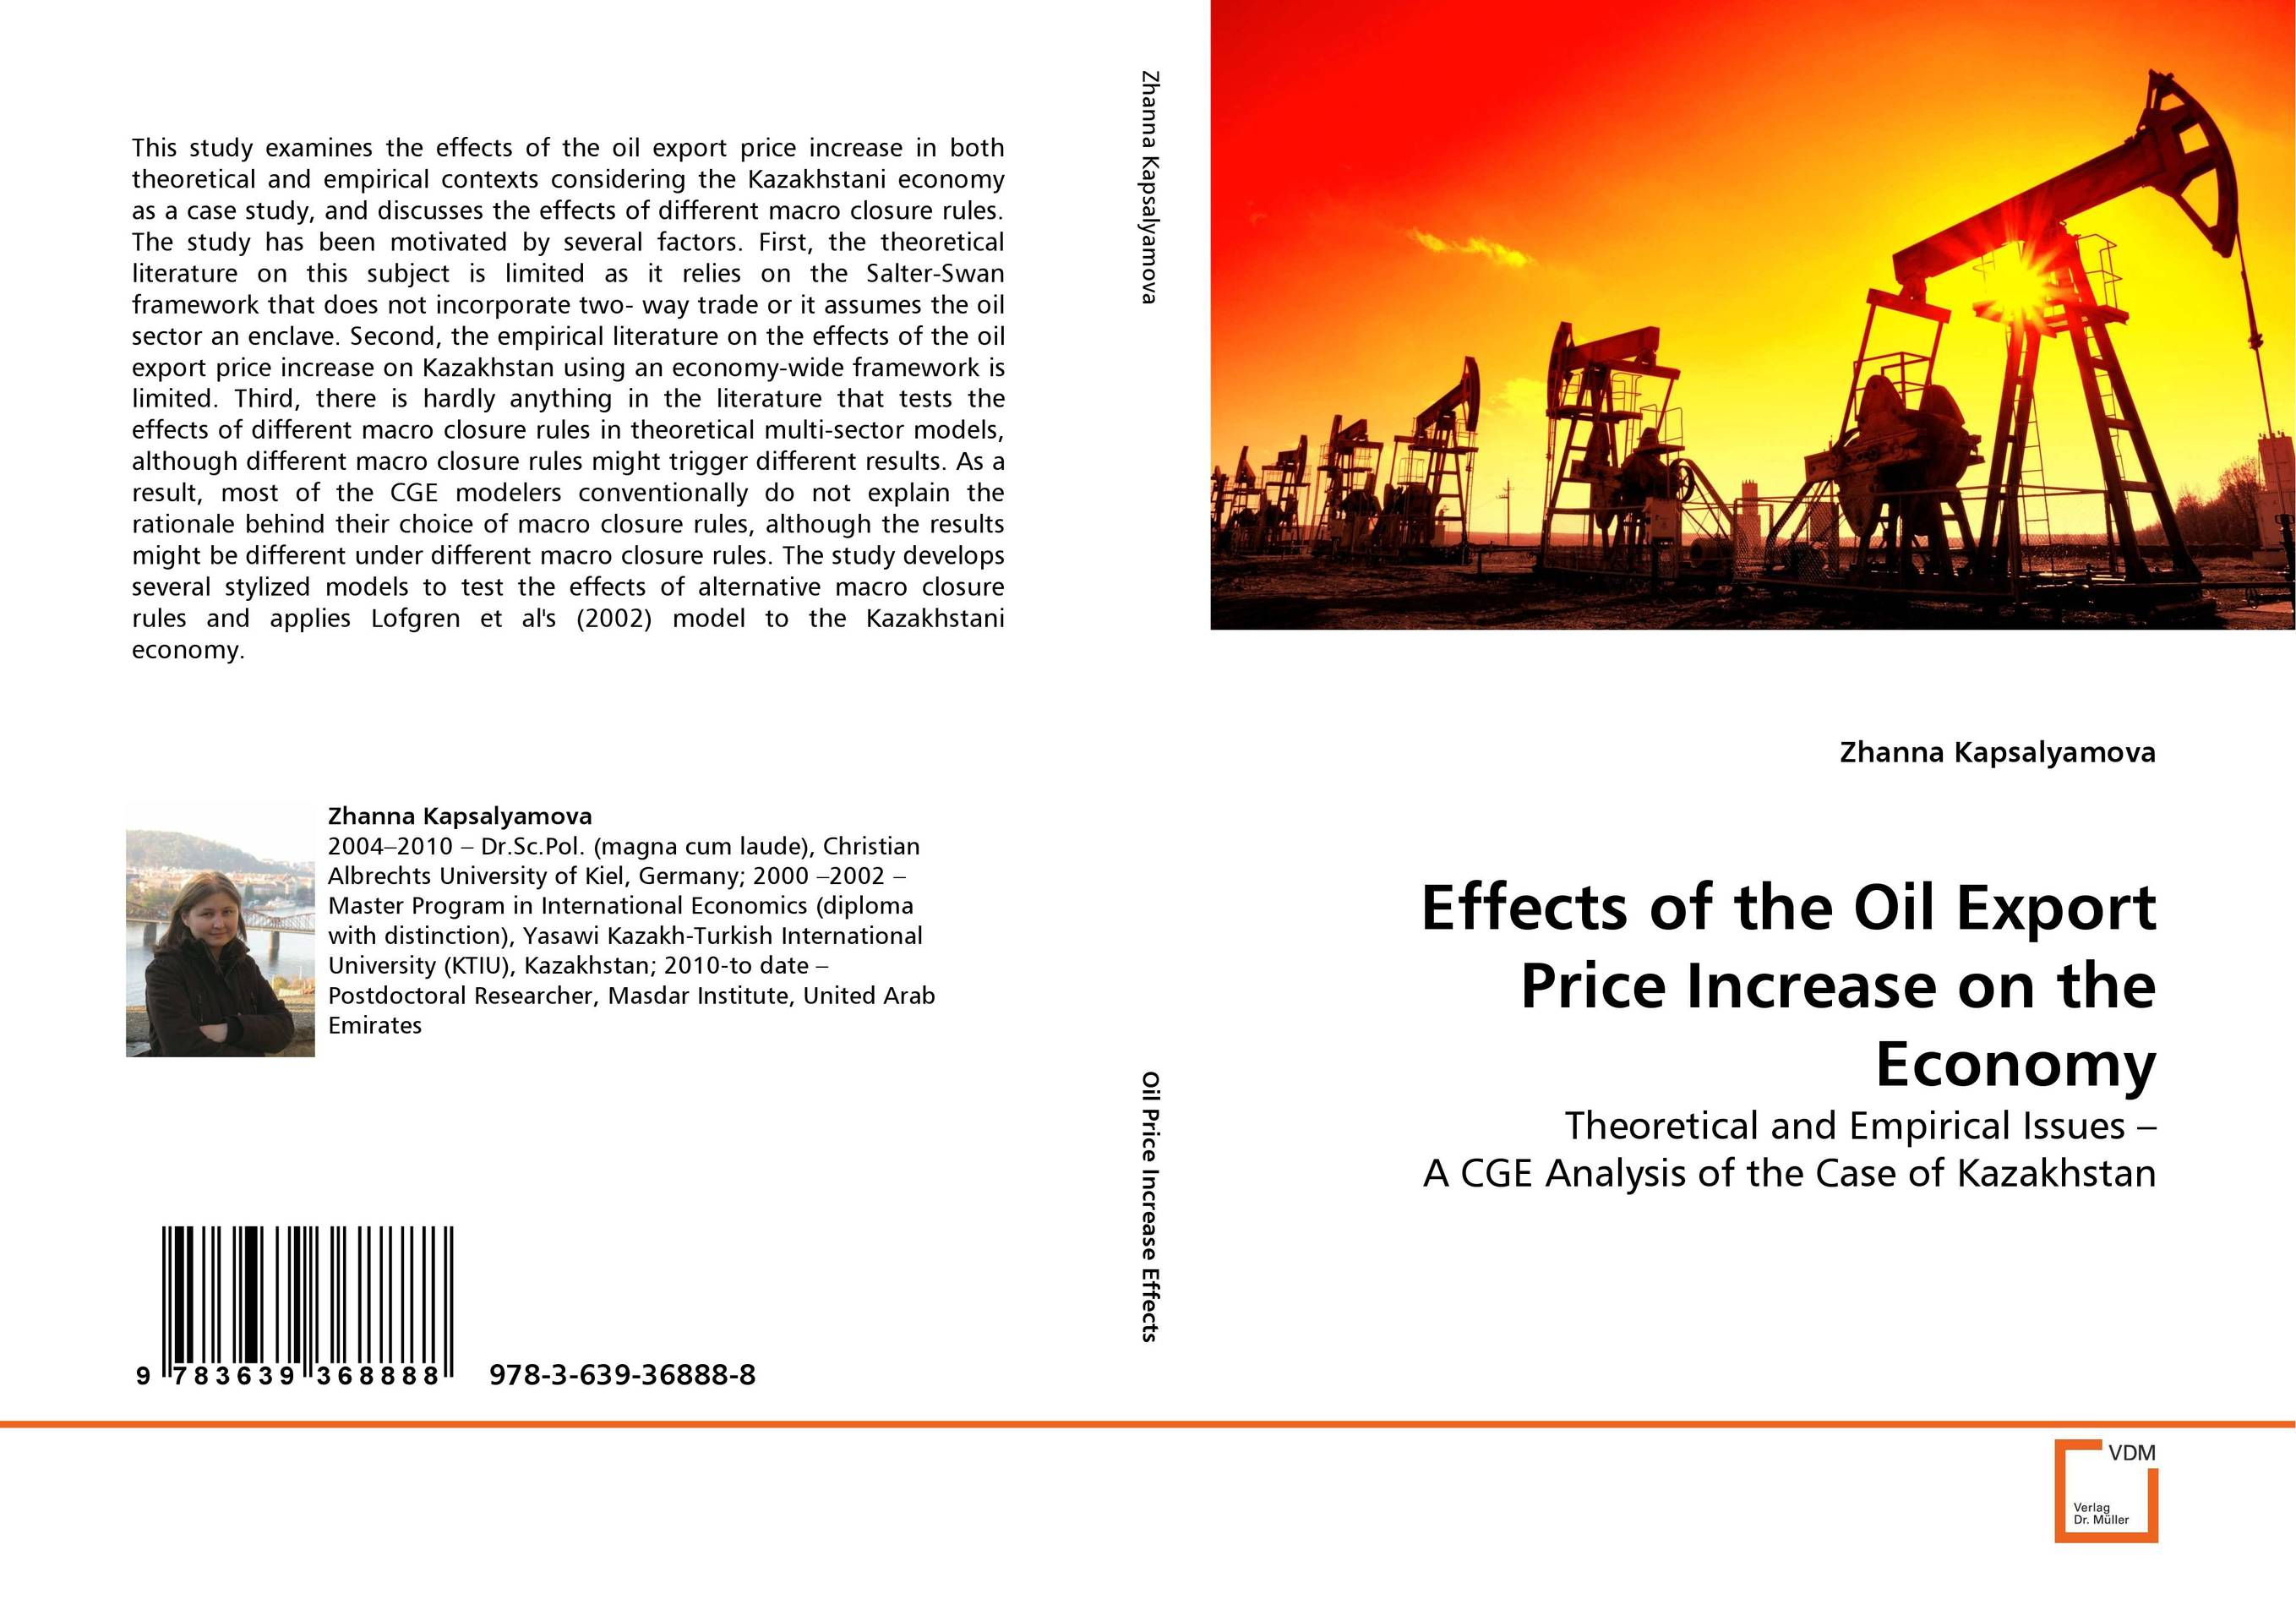 Effects of the Oil Export Price Increase on the Economy effects of exercise